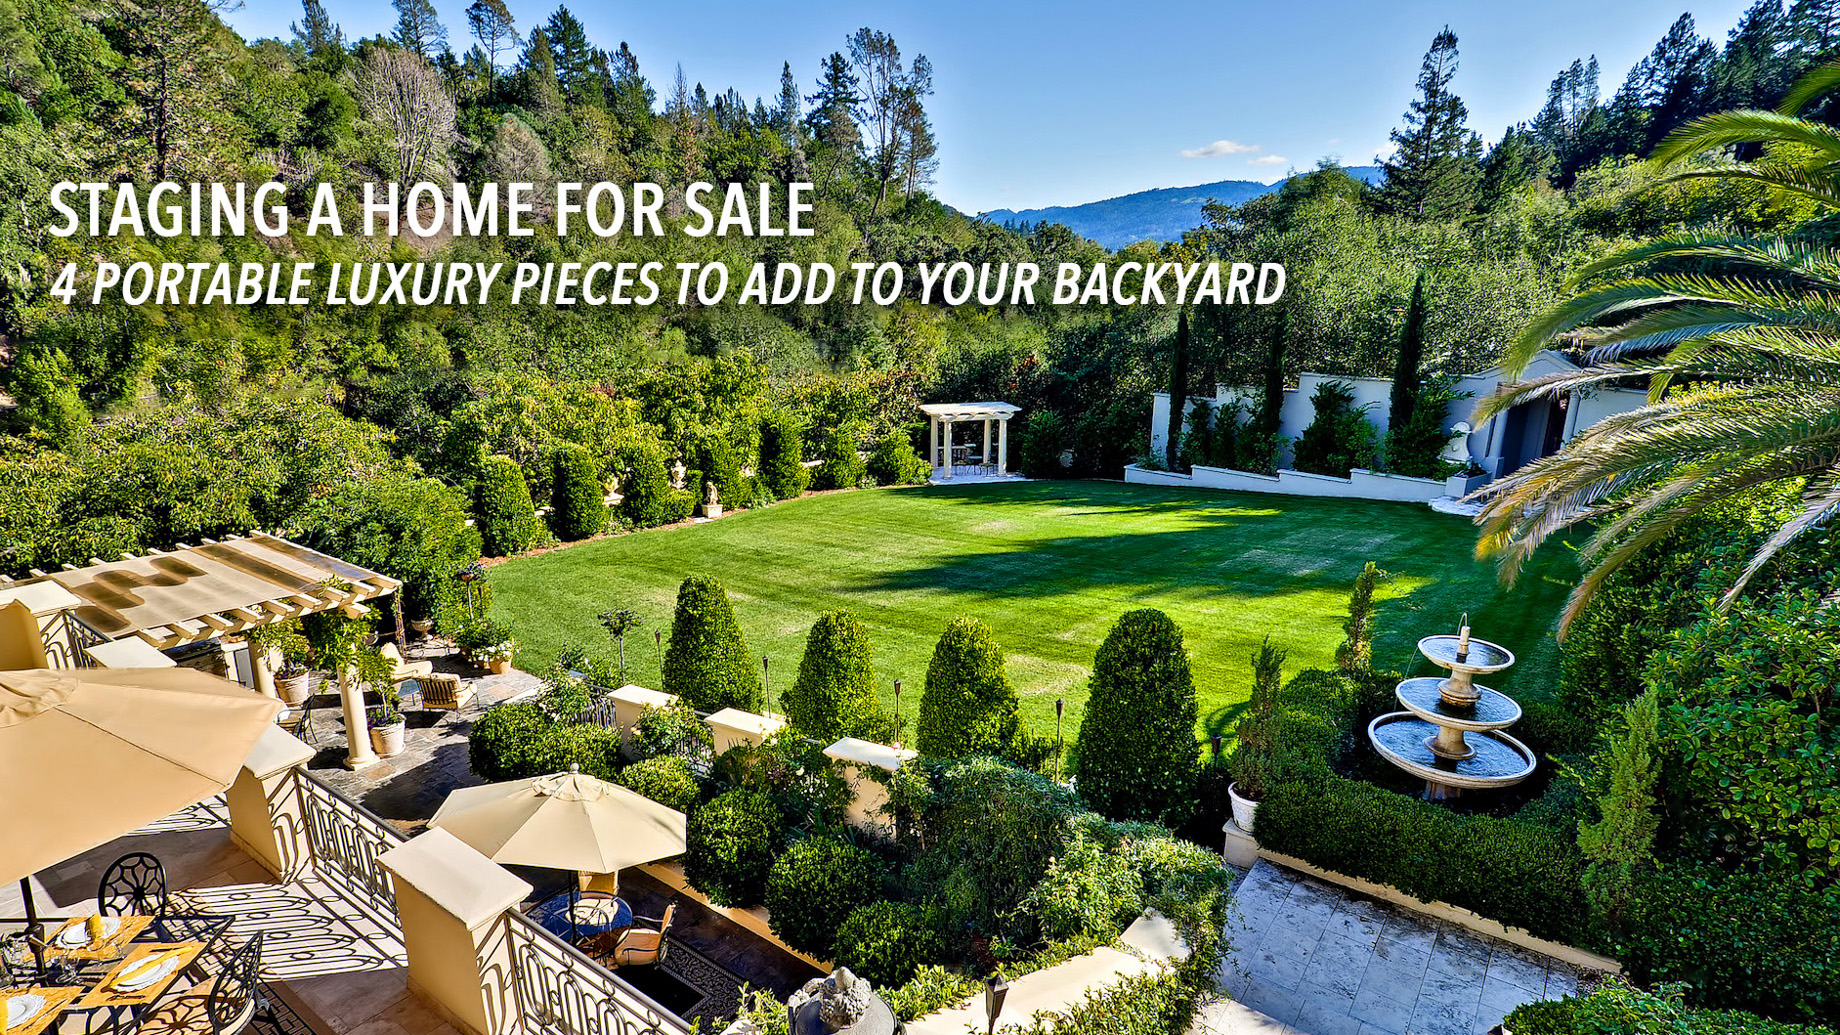 Staging a Home for Sale - 4 Portable Luxury Pieces to Add to Your Backyard